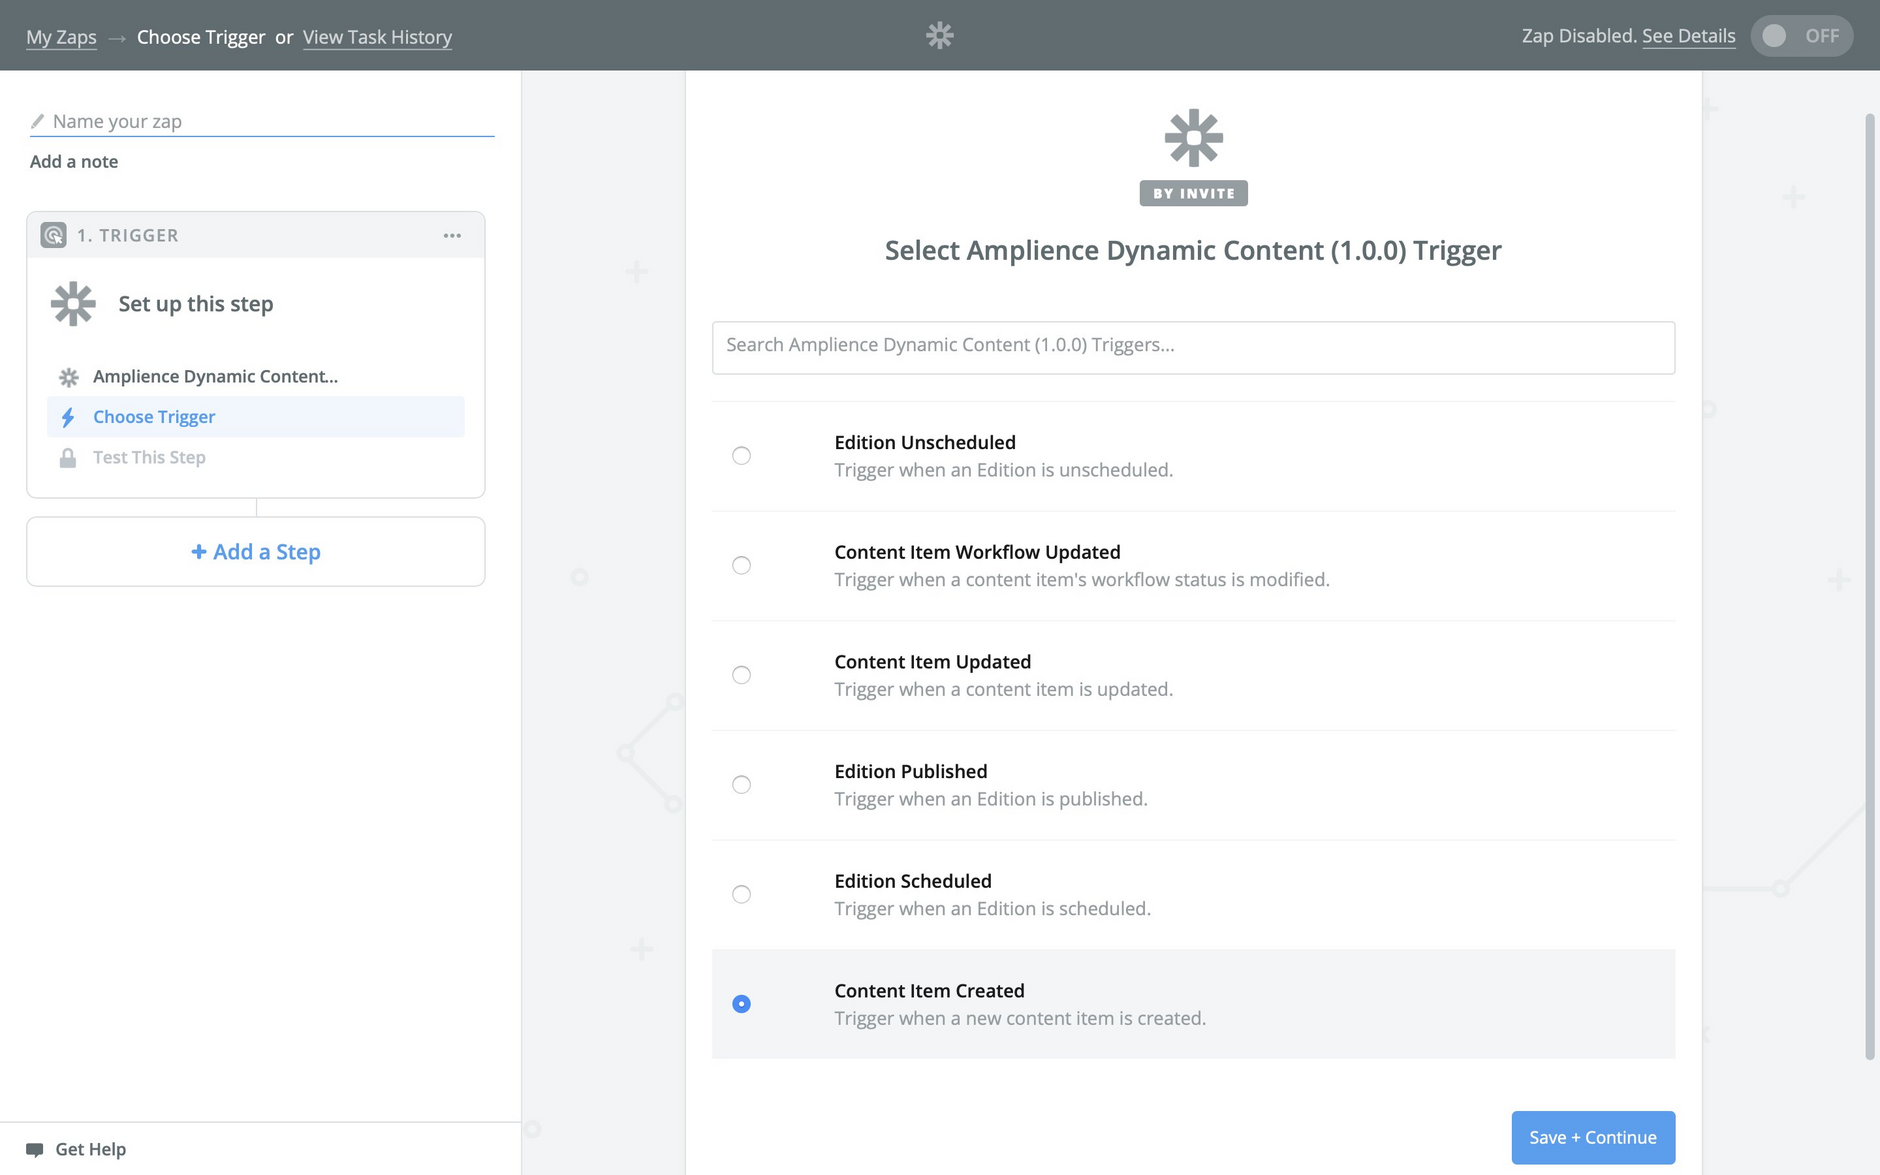 Selecting Dynamic Content triggers